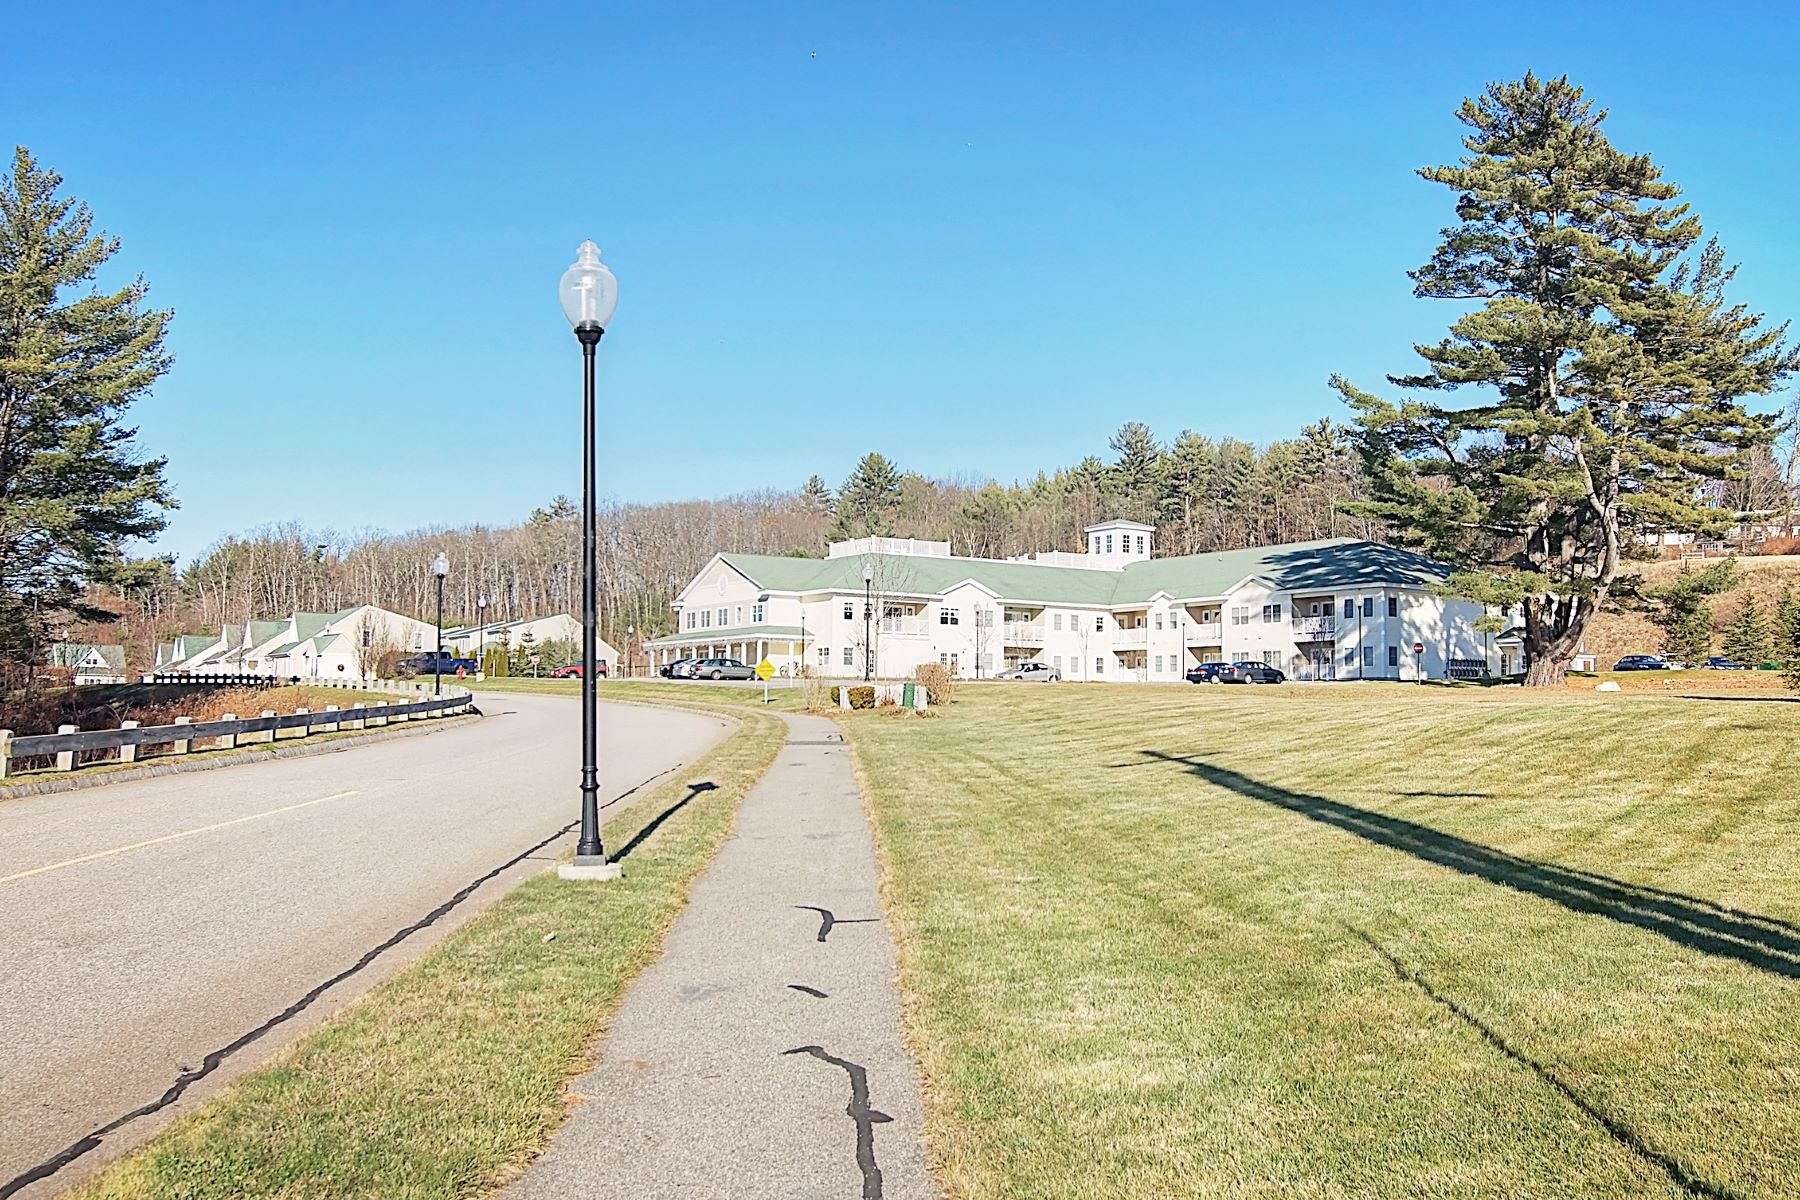 Condominium for Sale at 3 Abbey Lane, Unit 9 3 Abbey Ln 9 Meredith, New Hampshire 03253 United States